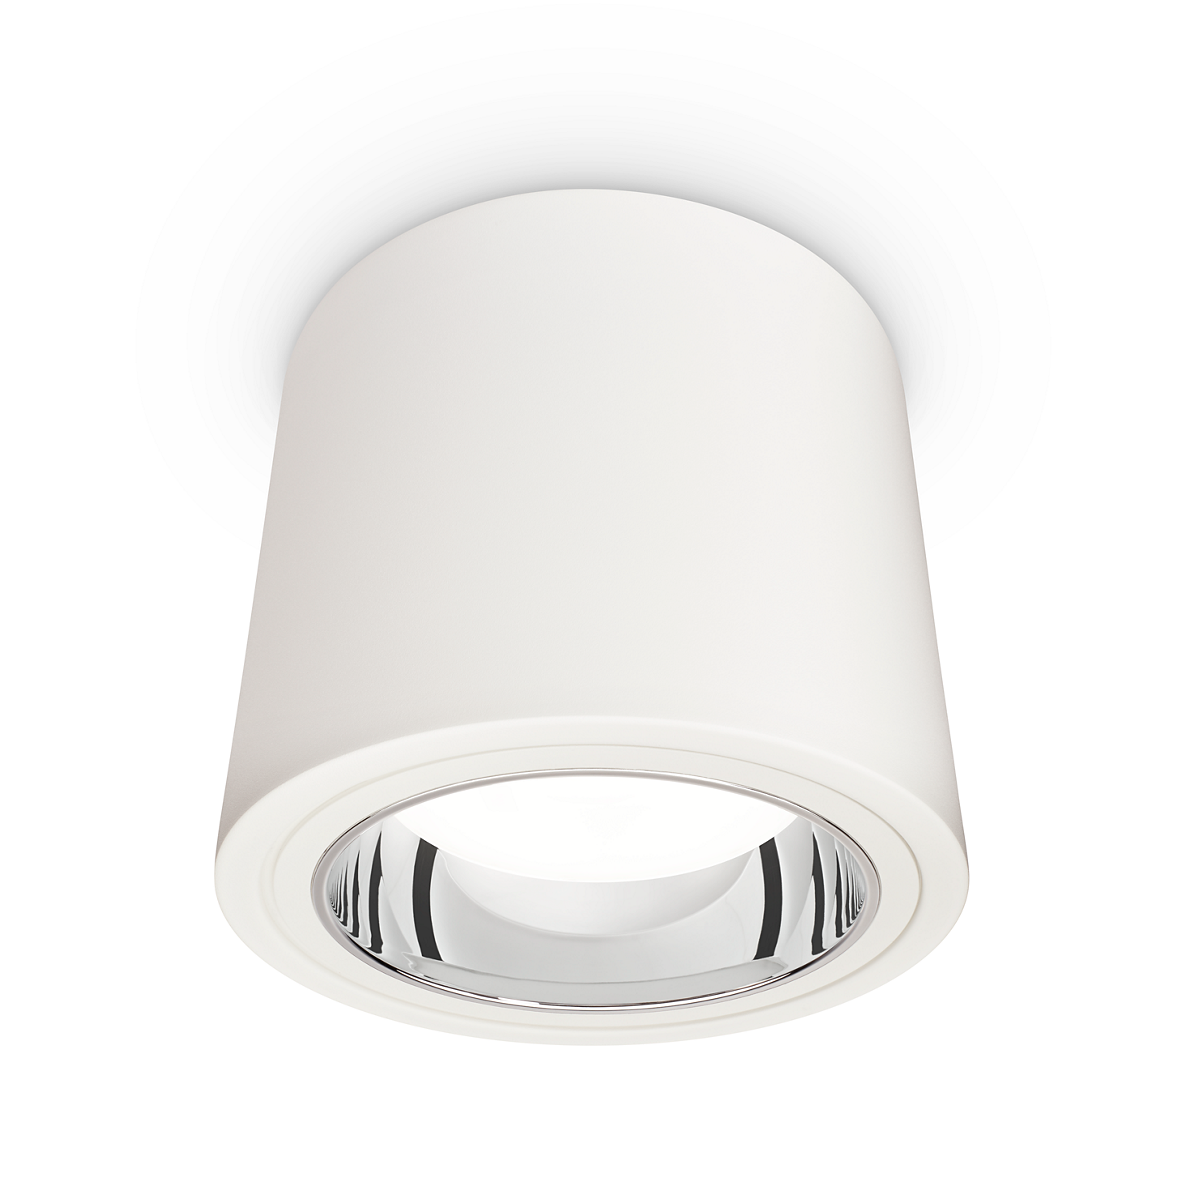 LuxSpace Compact LED gen2 Anbaudownlight